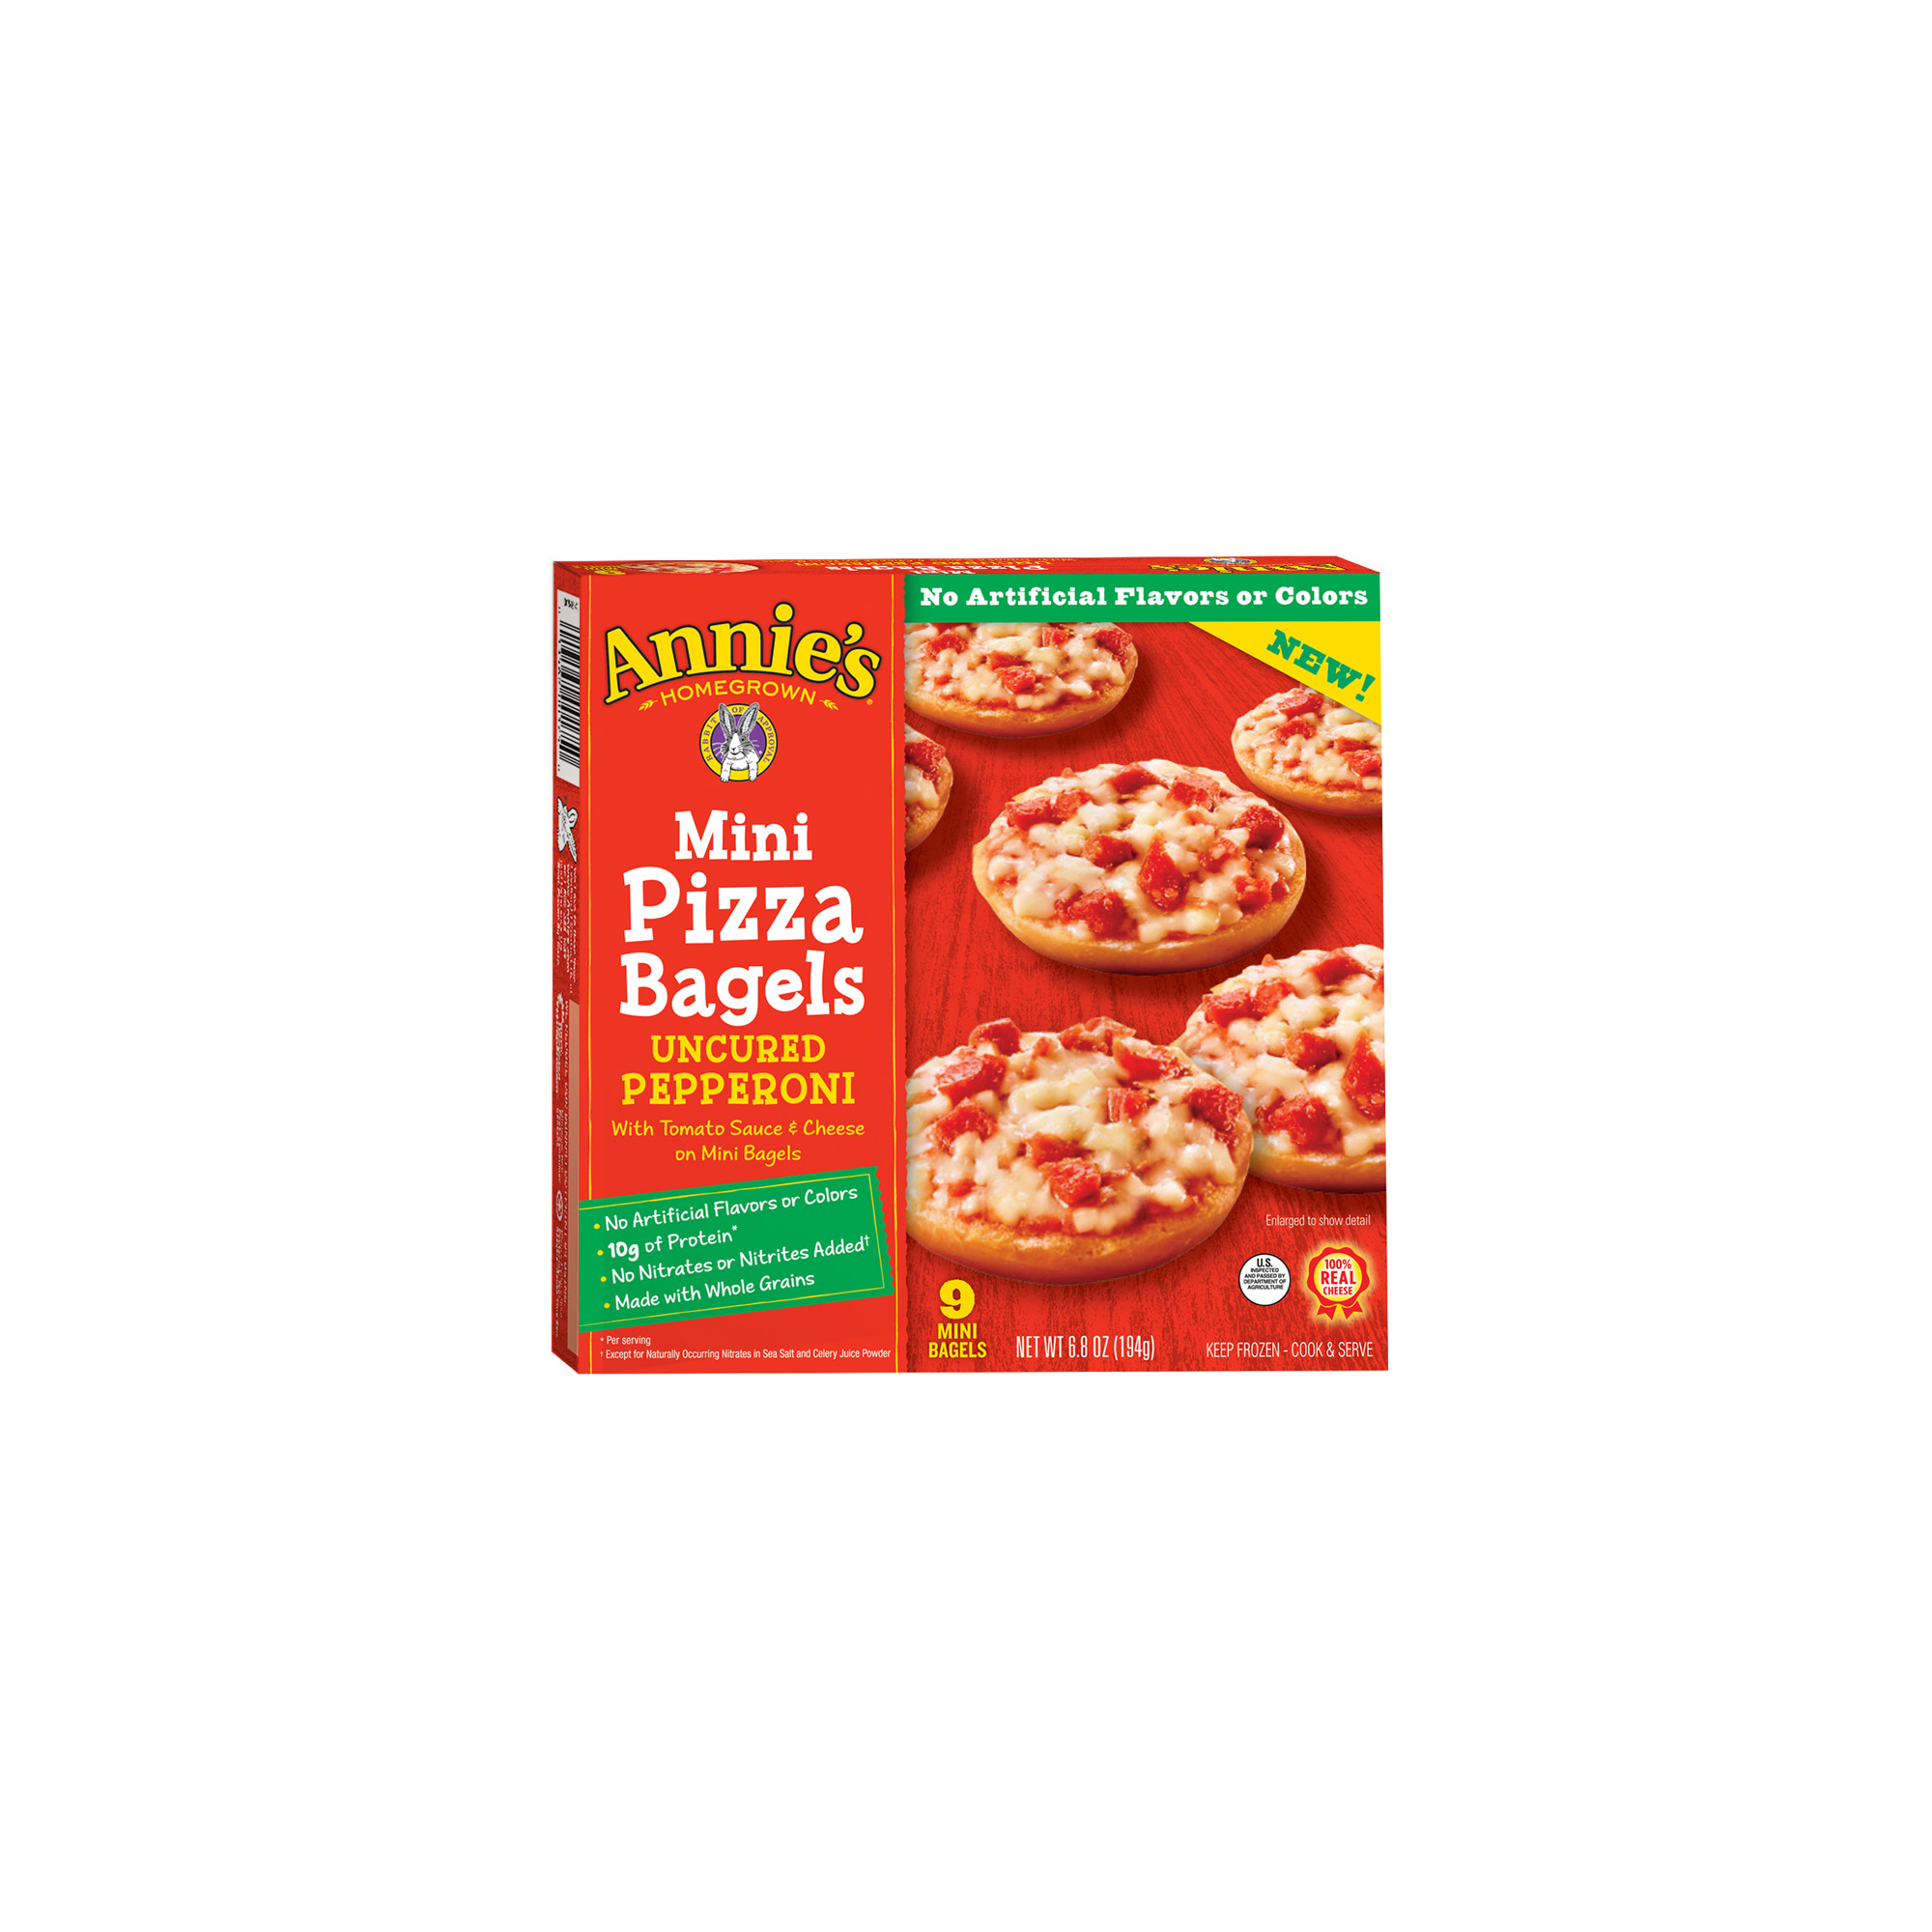 Annie's Uncured Pepperoni Mini Pizza Bagels